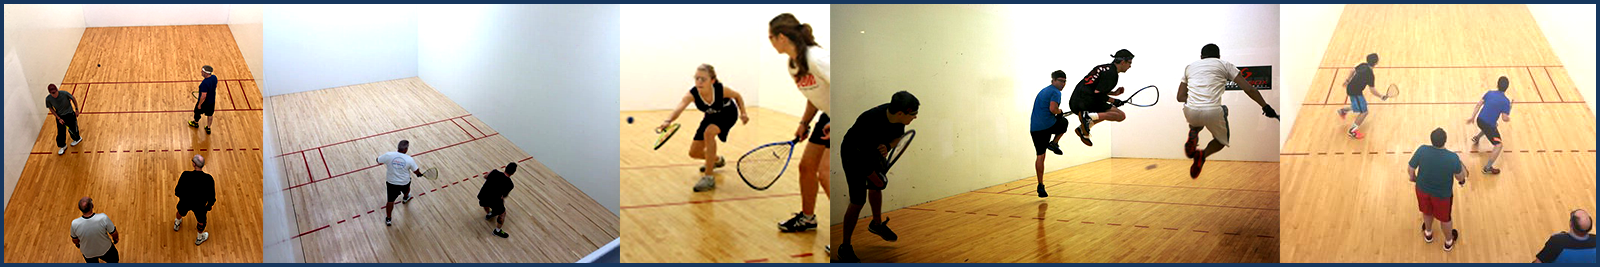 Racquetball at Kitsap Tennis and Athletic Center